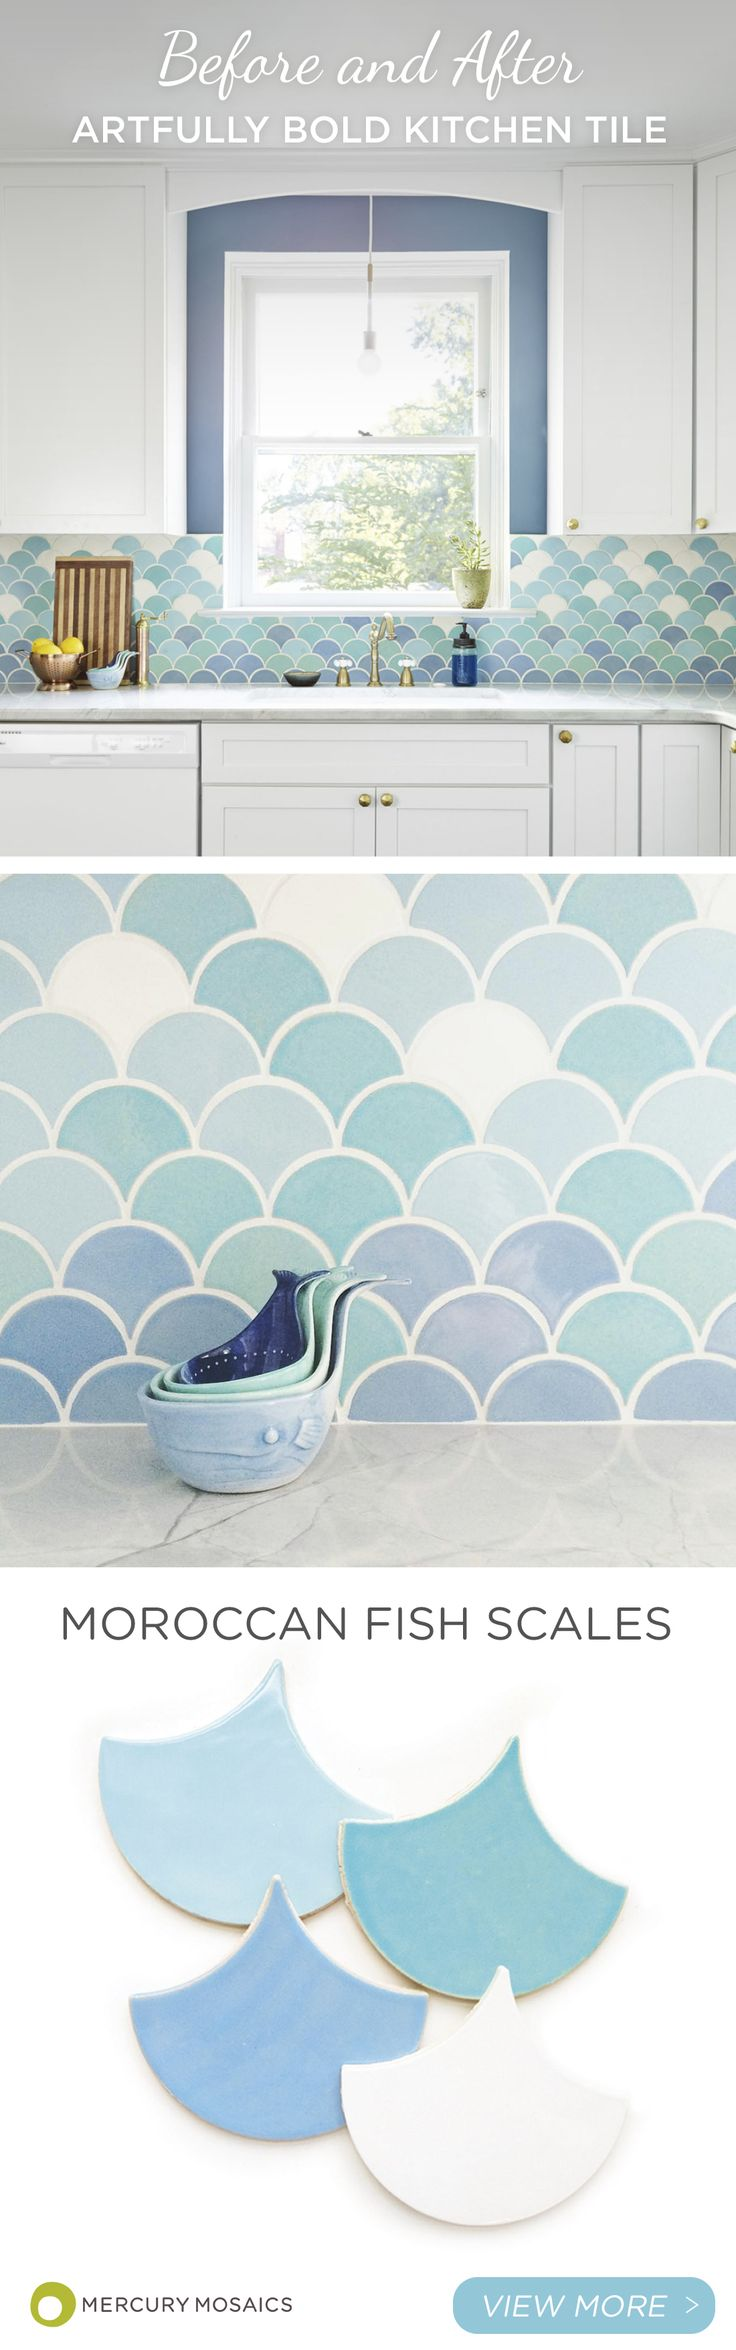 Now this is a kitchen that is sure to make your neighbors jealous! This gorgeous gradation of Moroccan Fish Scales in light blues to white is absolutely breathtaking. What is even more jaw-dropping is the transformation of what it looked like before! Seeing the before and after photos of gorgeous interior spaces can give you hope and inspiration for your renovation project.